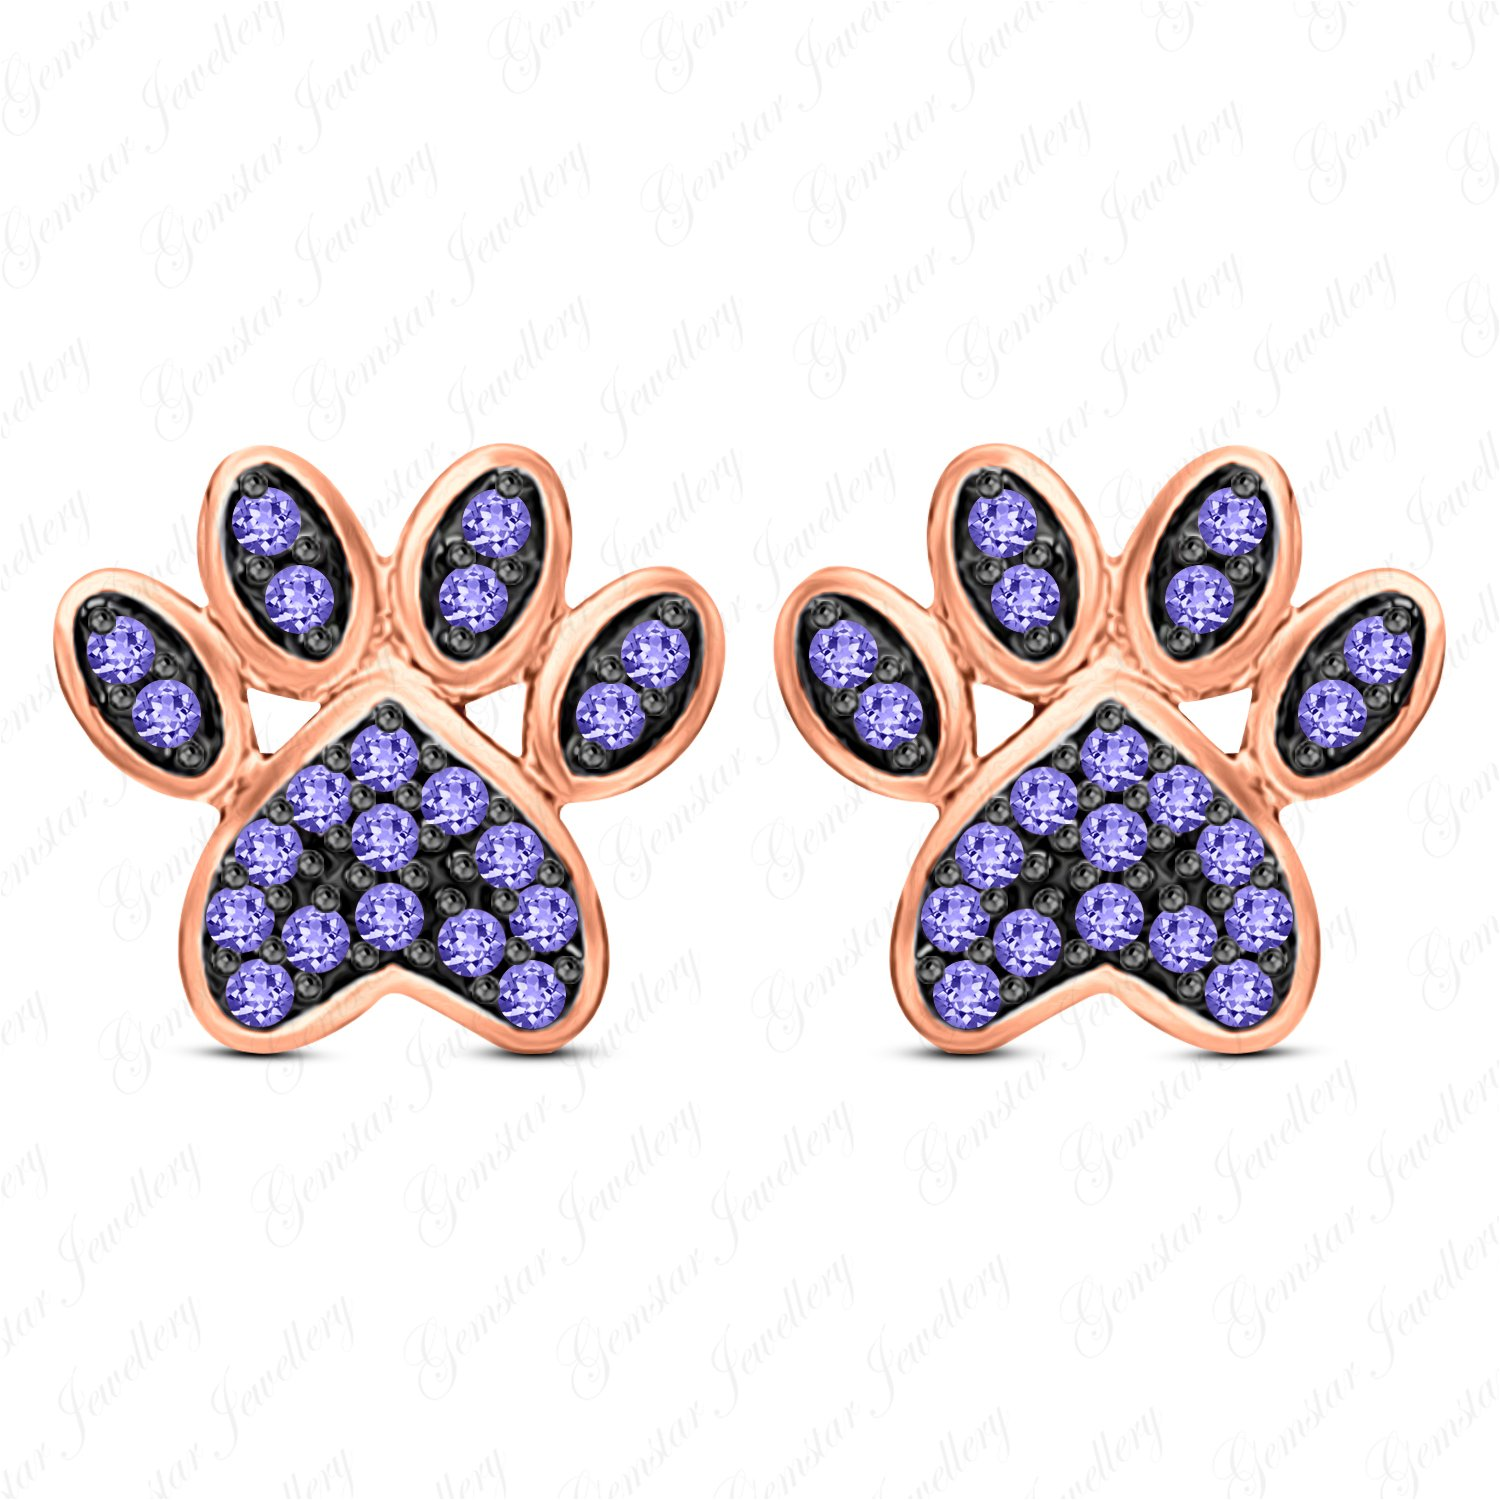 Gemstar Jewellery Lovely Dog Paw Print Stud Earrings In 14k Rose Gold Plated Brilliant Cut Tanzanite